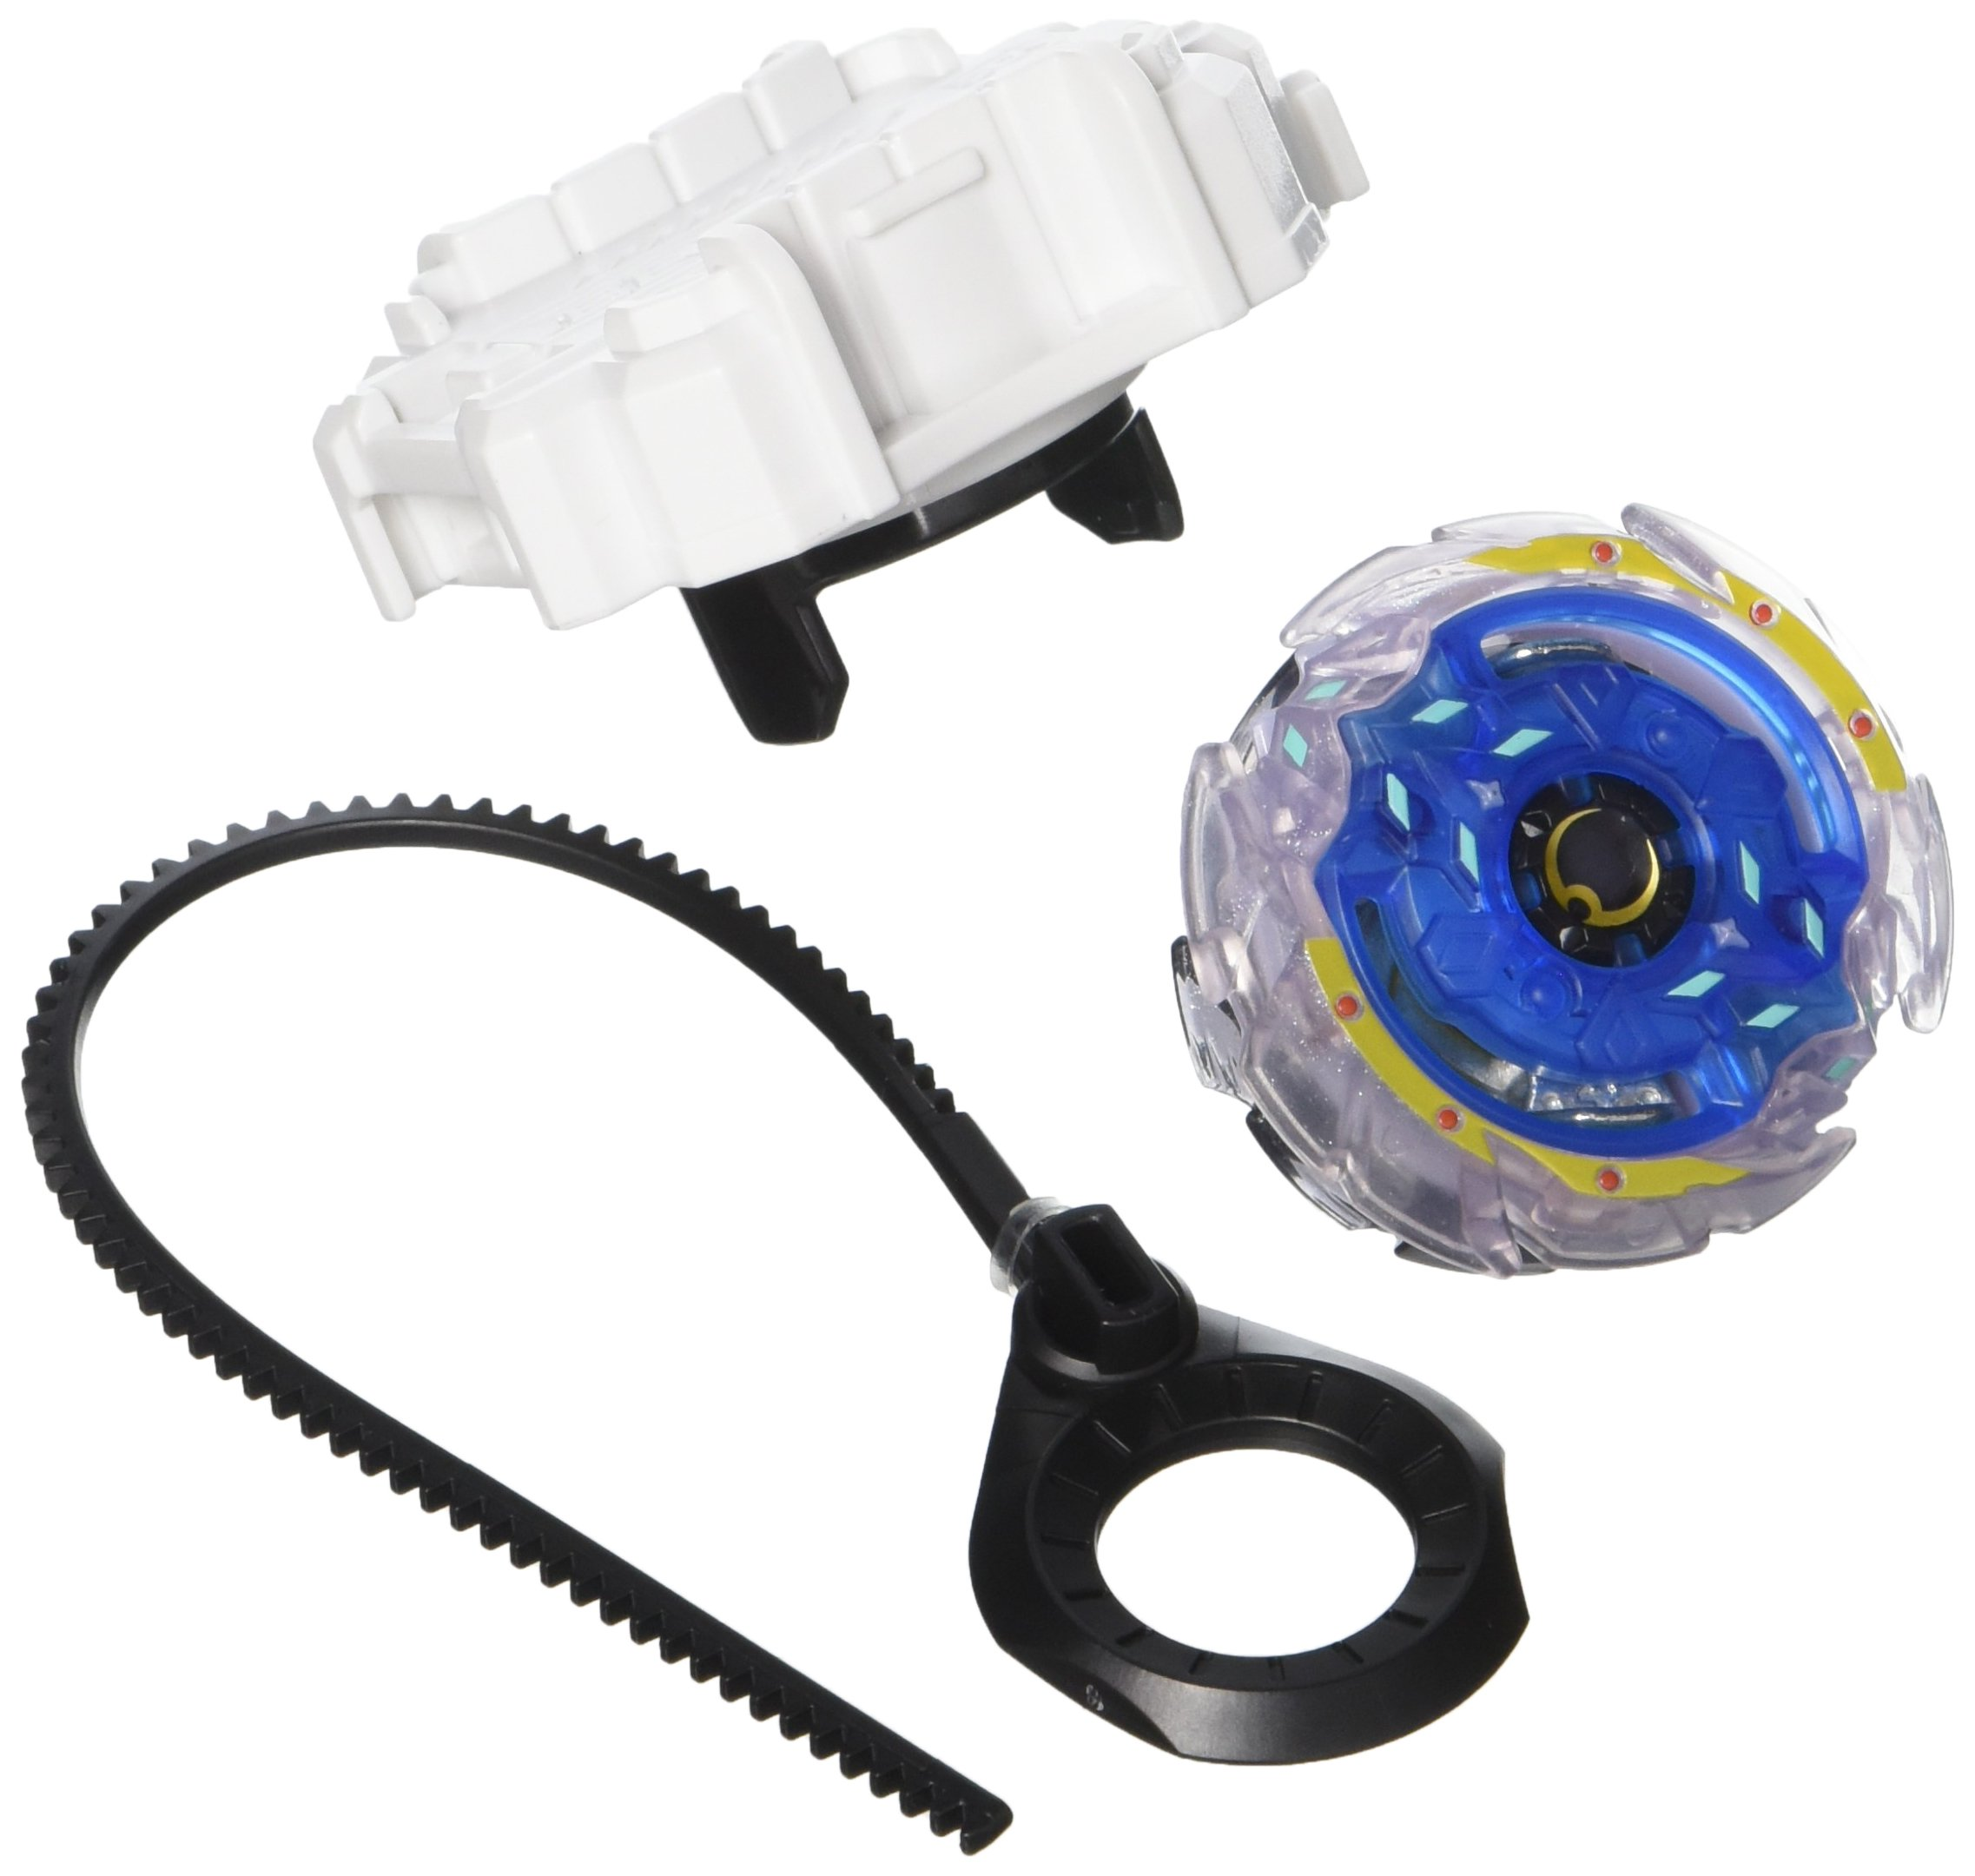 Beyblade Burst Evolution SwitchStrike Starter Pack Caynox C3